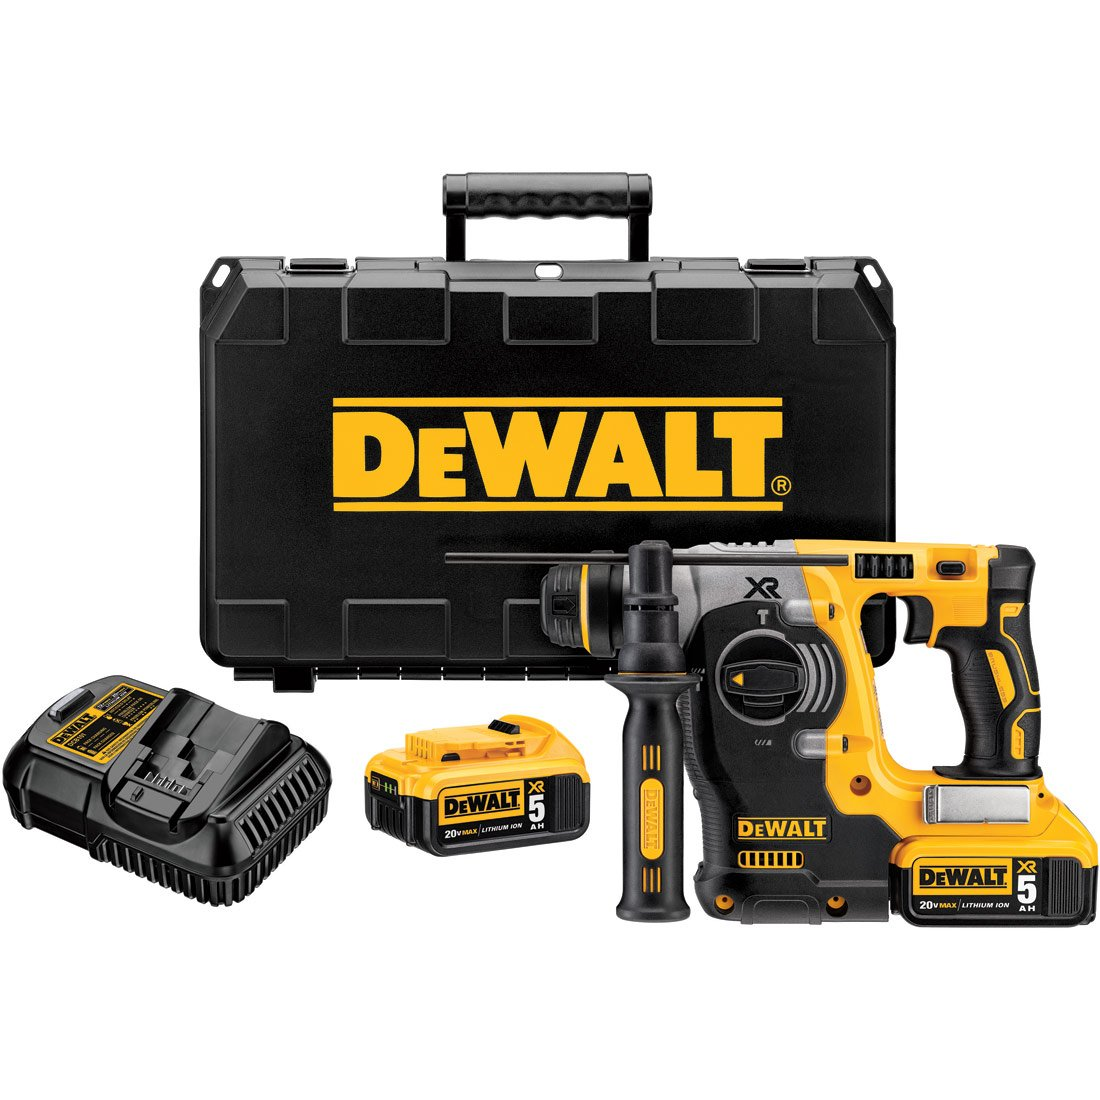 "DeWalt DCH273P2 20V MAX Lithium-Ion Brushless SDS 3 Mode 1"" Rotary Hammer Kit"